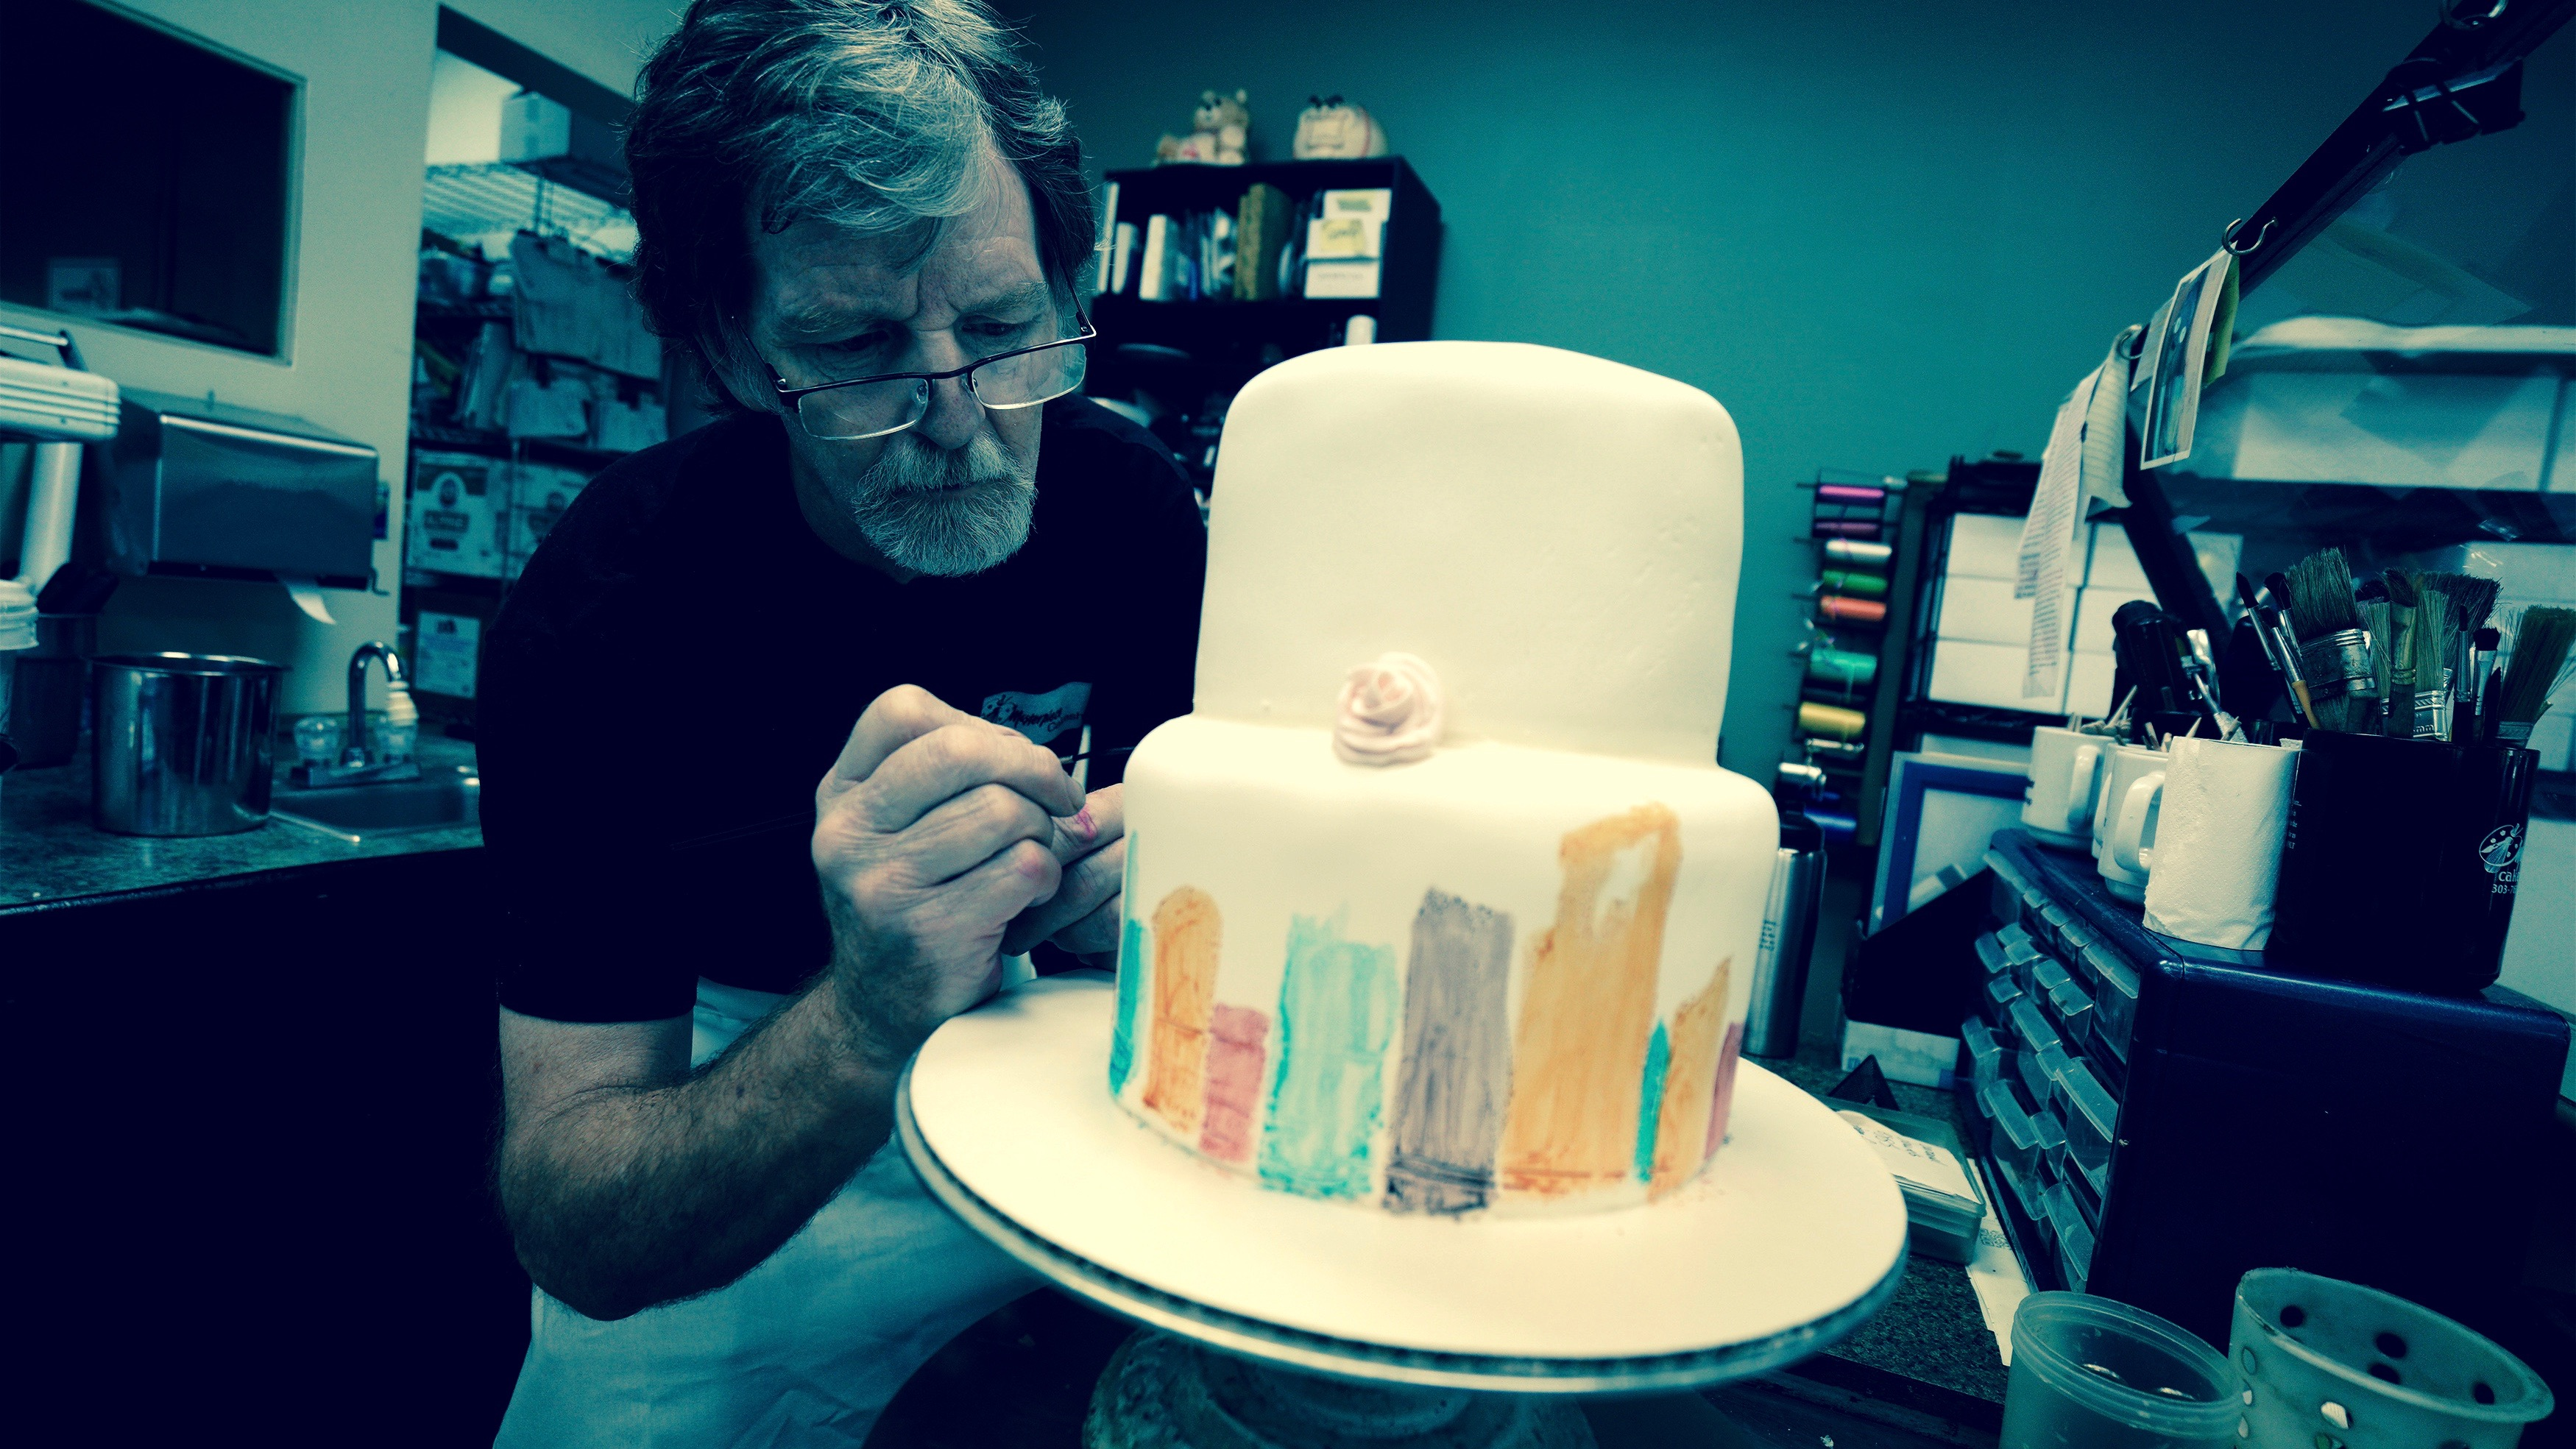 Jack Phillips, owner of Masterpiece Cakeshop, will be best remembered for the cake he didn't bake.